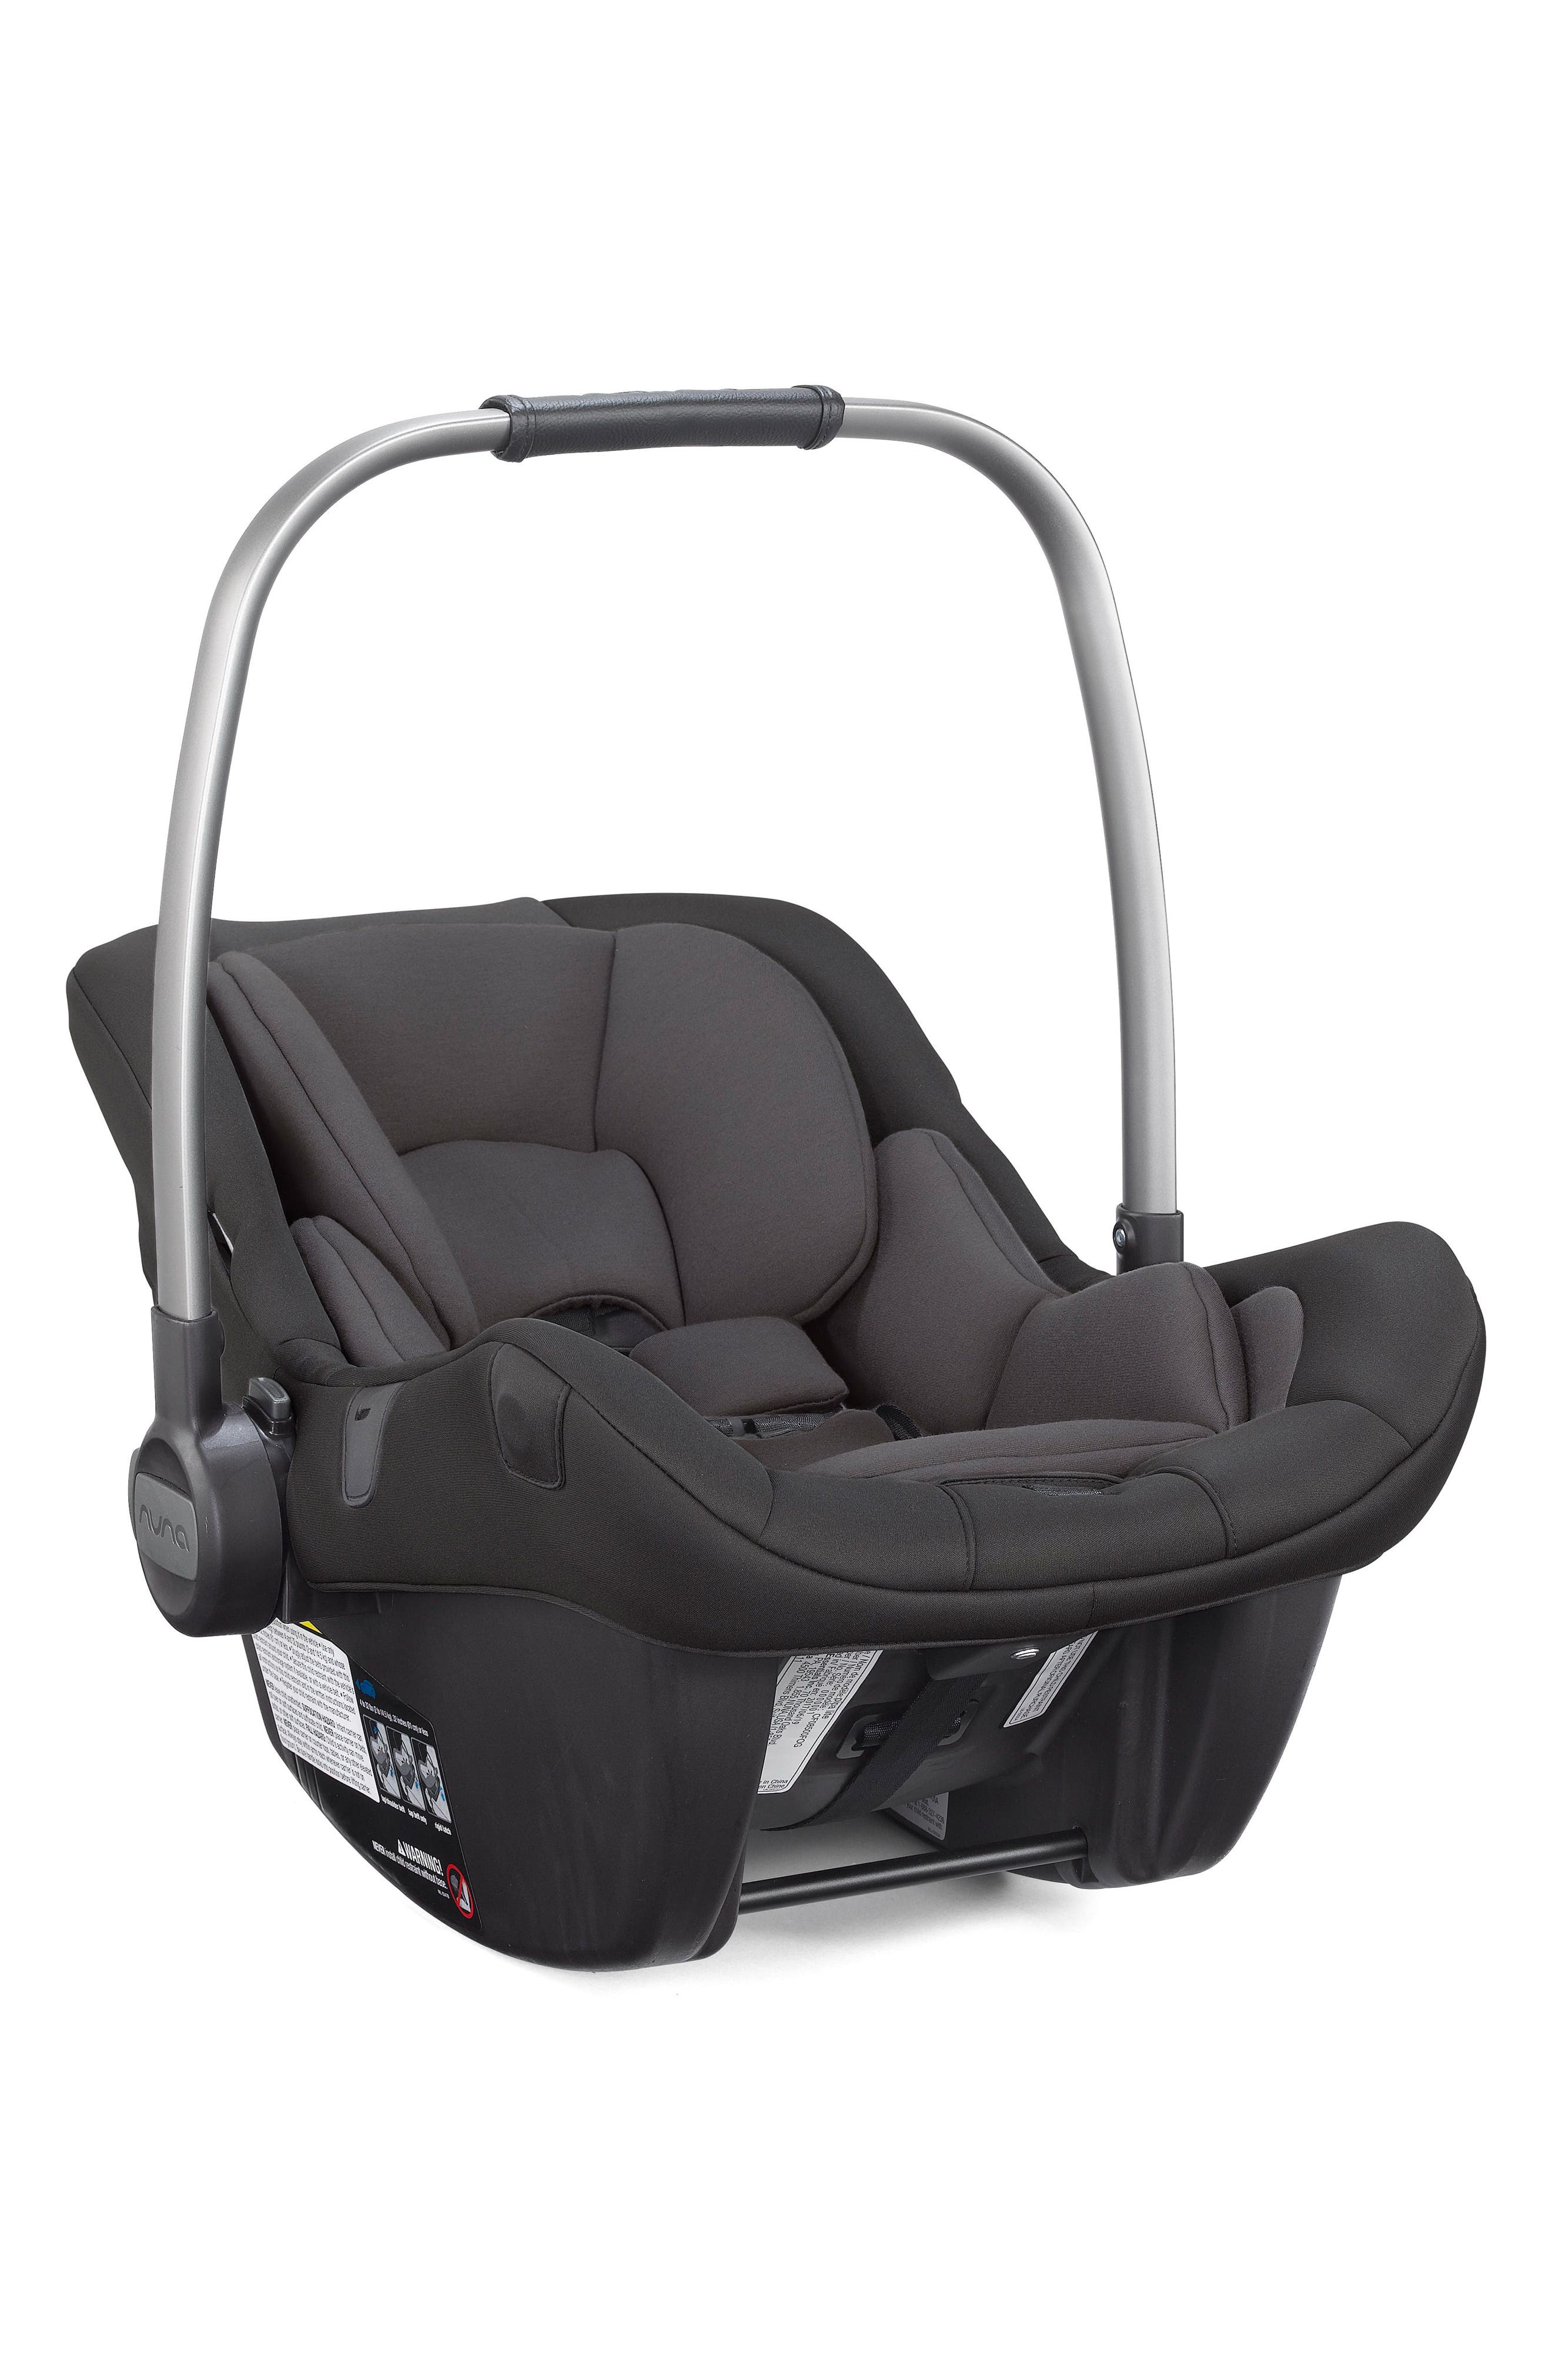 2017 PIPA<sup>™</sup> Lite LX Infant Car Seat & Base,                             Alternate thumbnail 6, color,                             STONE